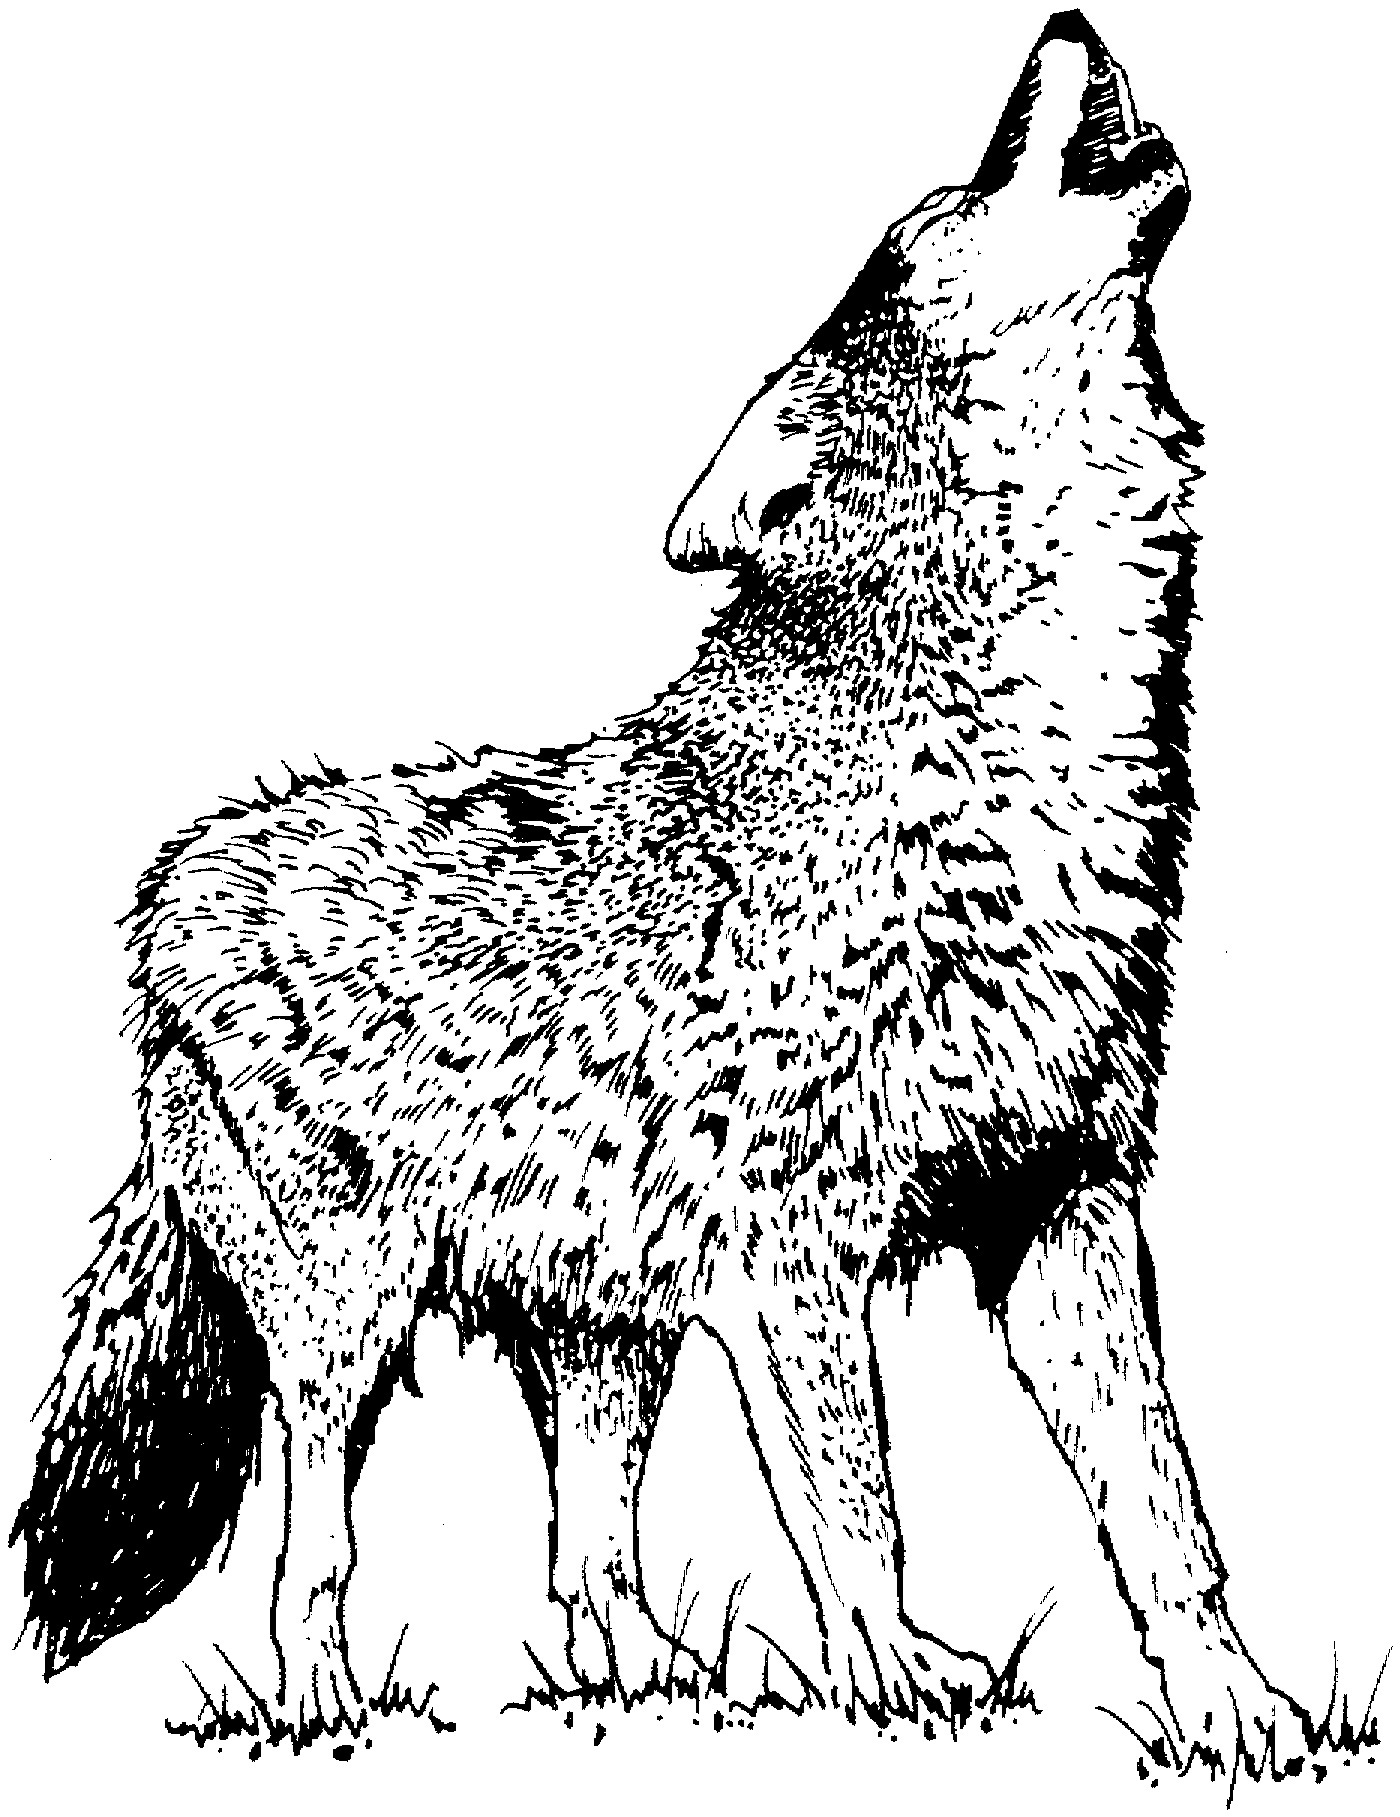 wolf pictures for kids wolf face template animal art projects kids art projects wolf kids for pictures